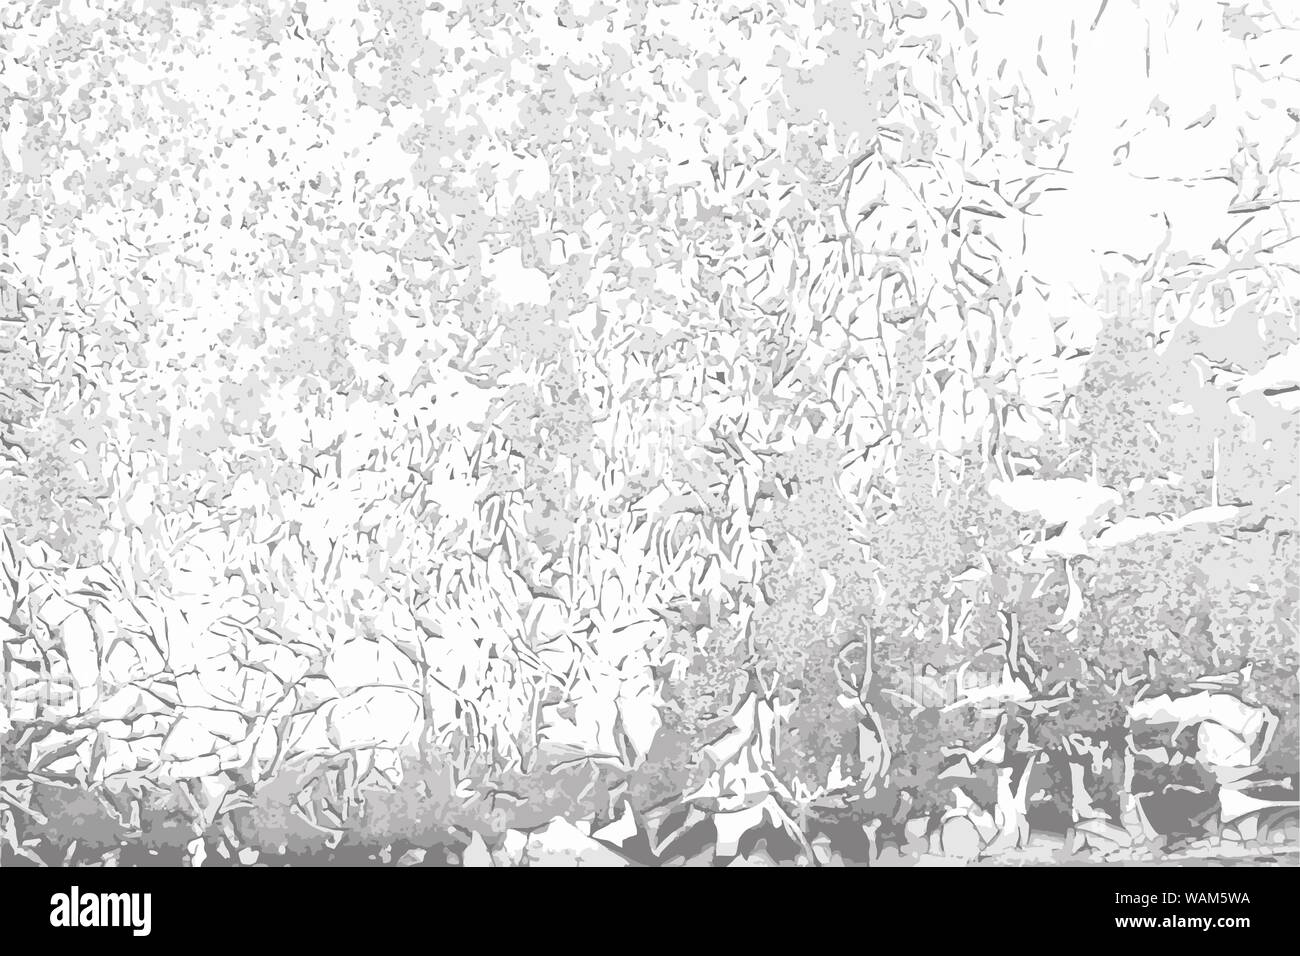 Old Paint Splatter Vector Black And White Texture Background